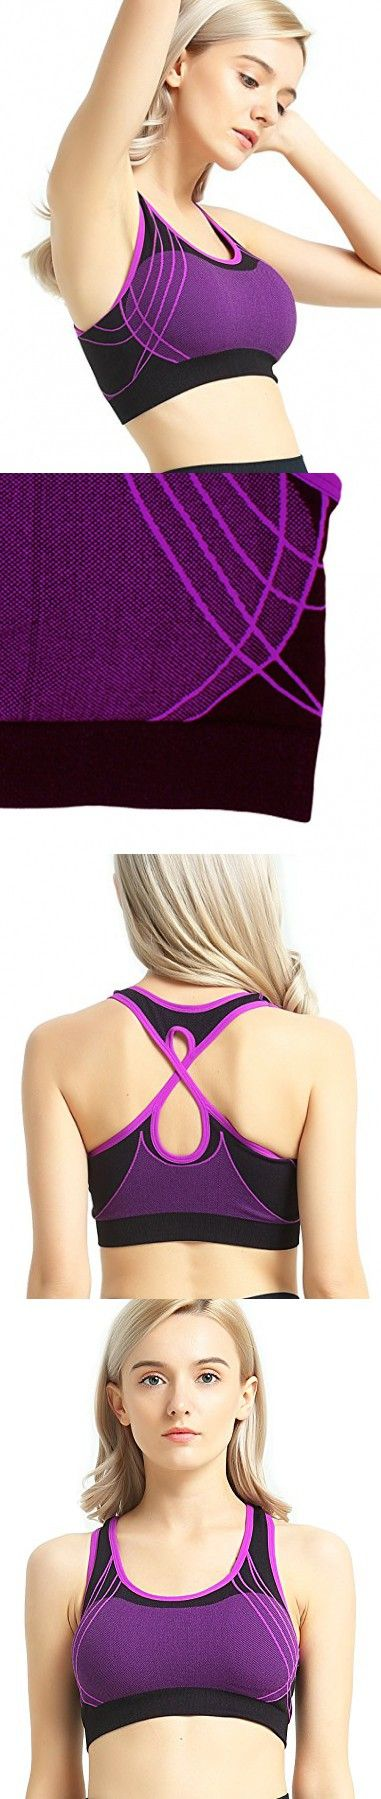 3a56167fa0782 Capricia O Dare Women s Sports Bras Seamless Racerback Wireless Padded For Workout  Yoga (Purple